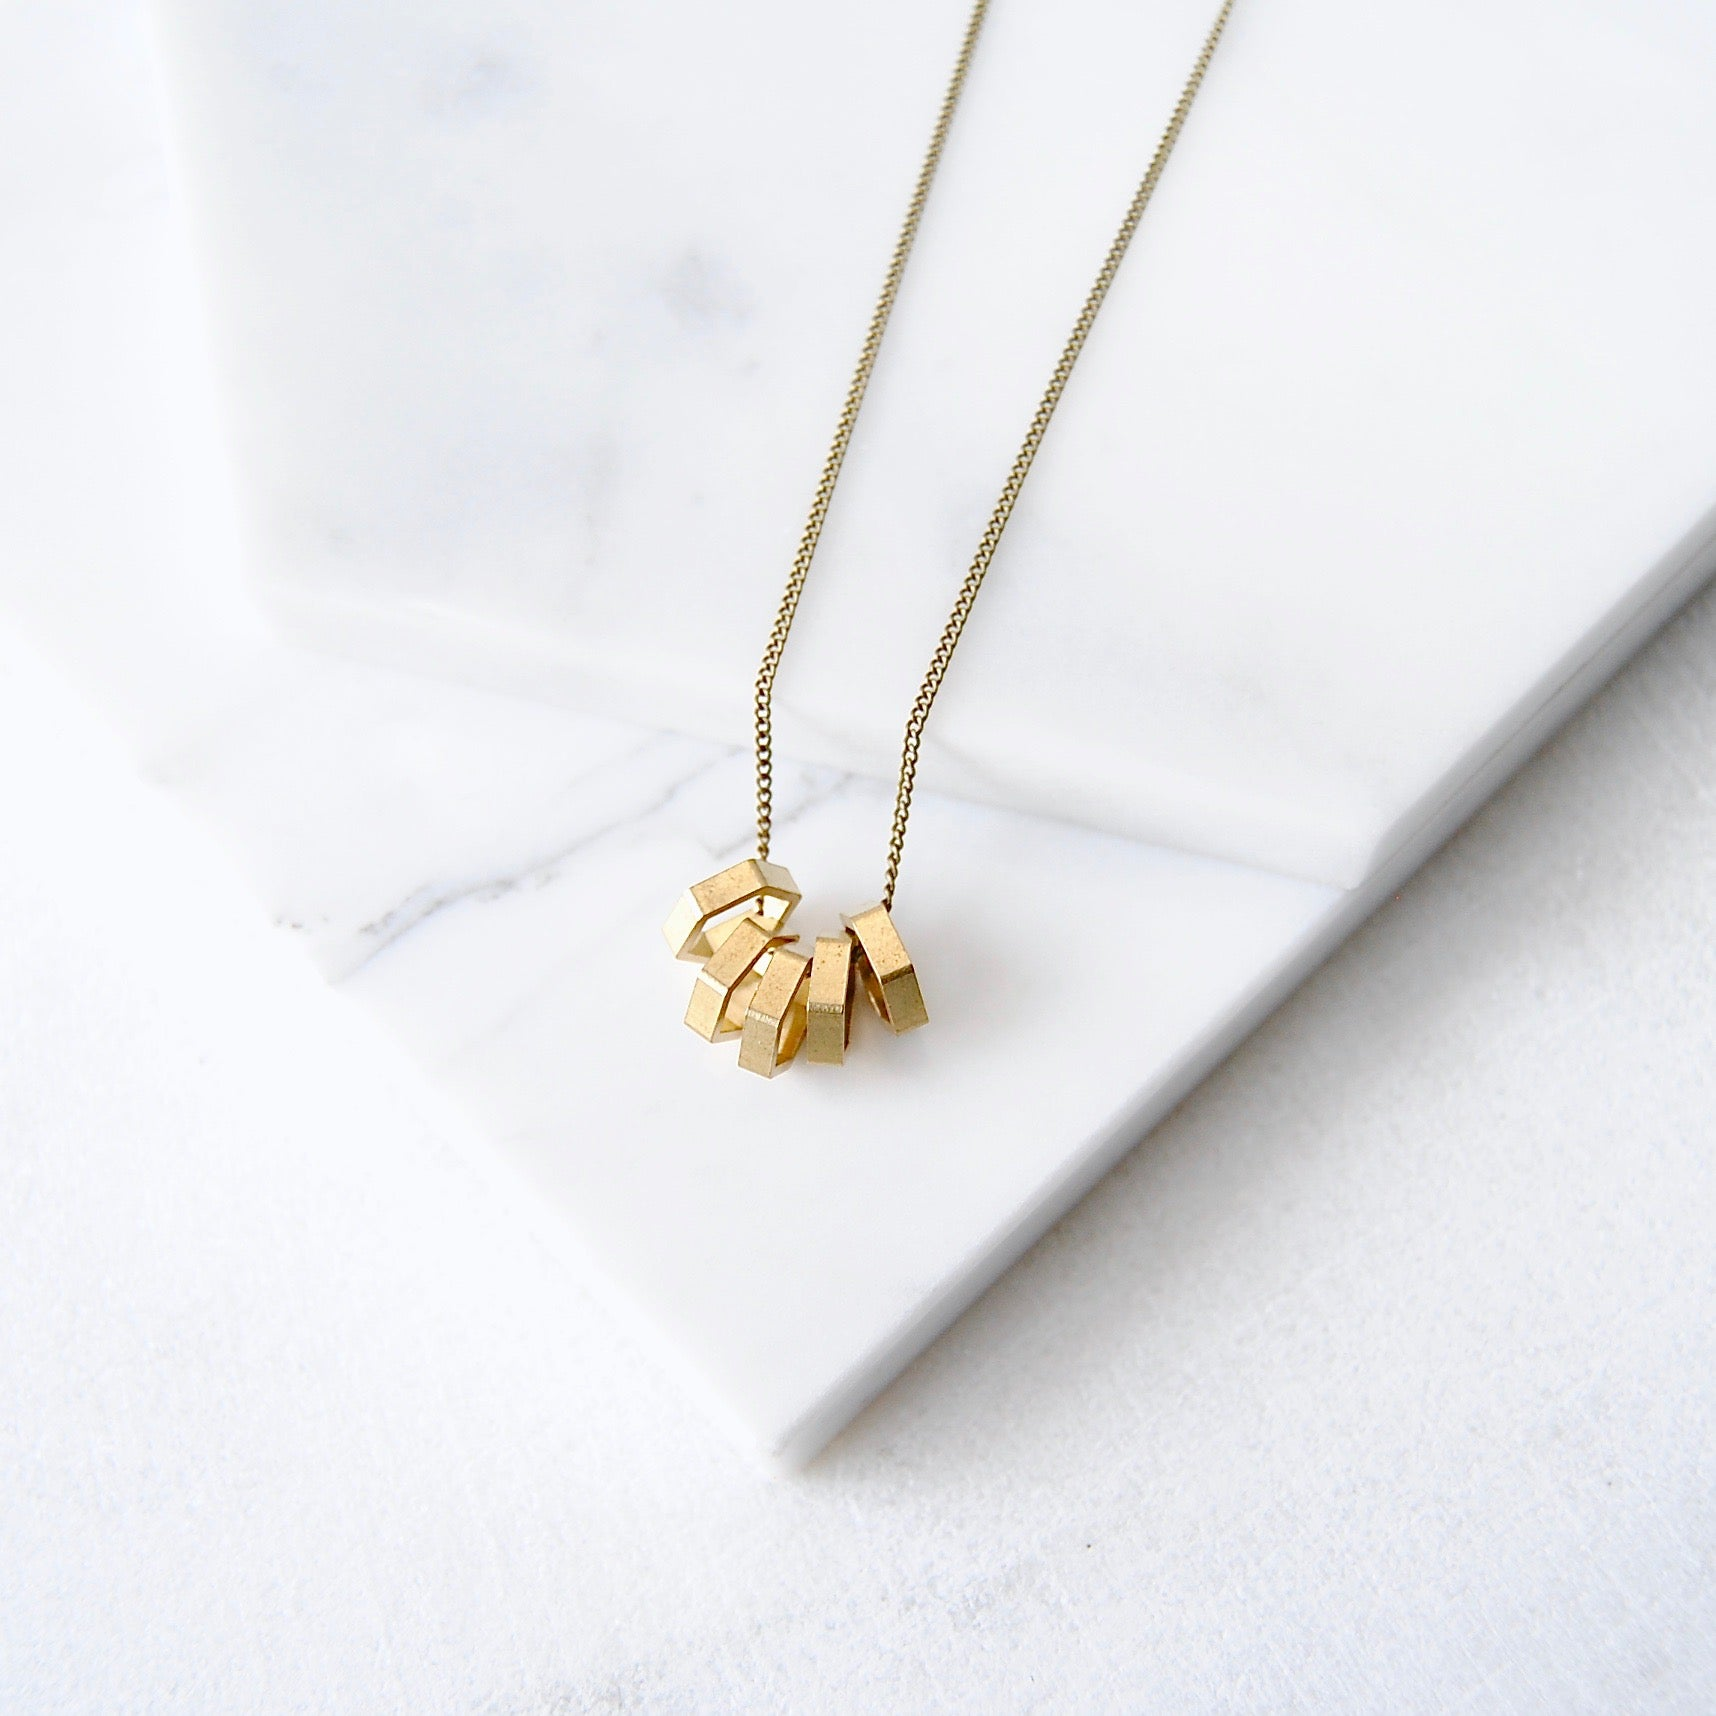 RAW HEX NECKLACE